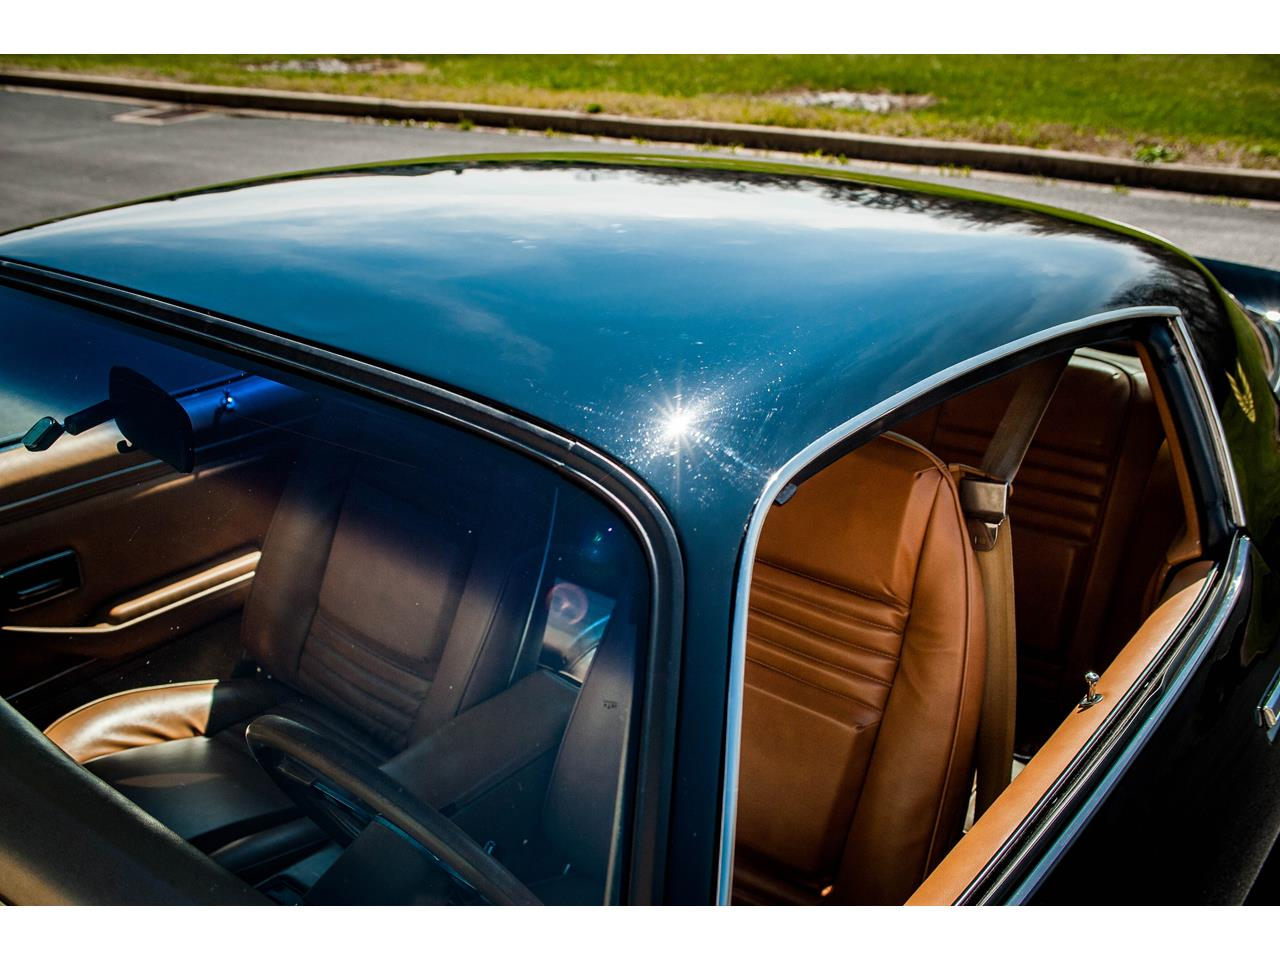 Large Picture of 1979 Firebird located in O'Fallon Illinois - $36,500.00 Offered by Gateway Classic Cars - St. Louis - QB8A